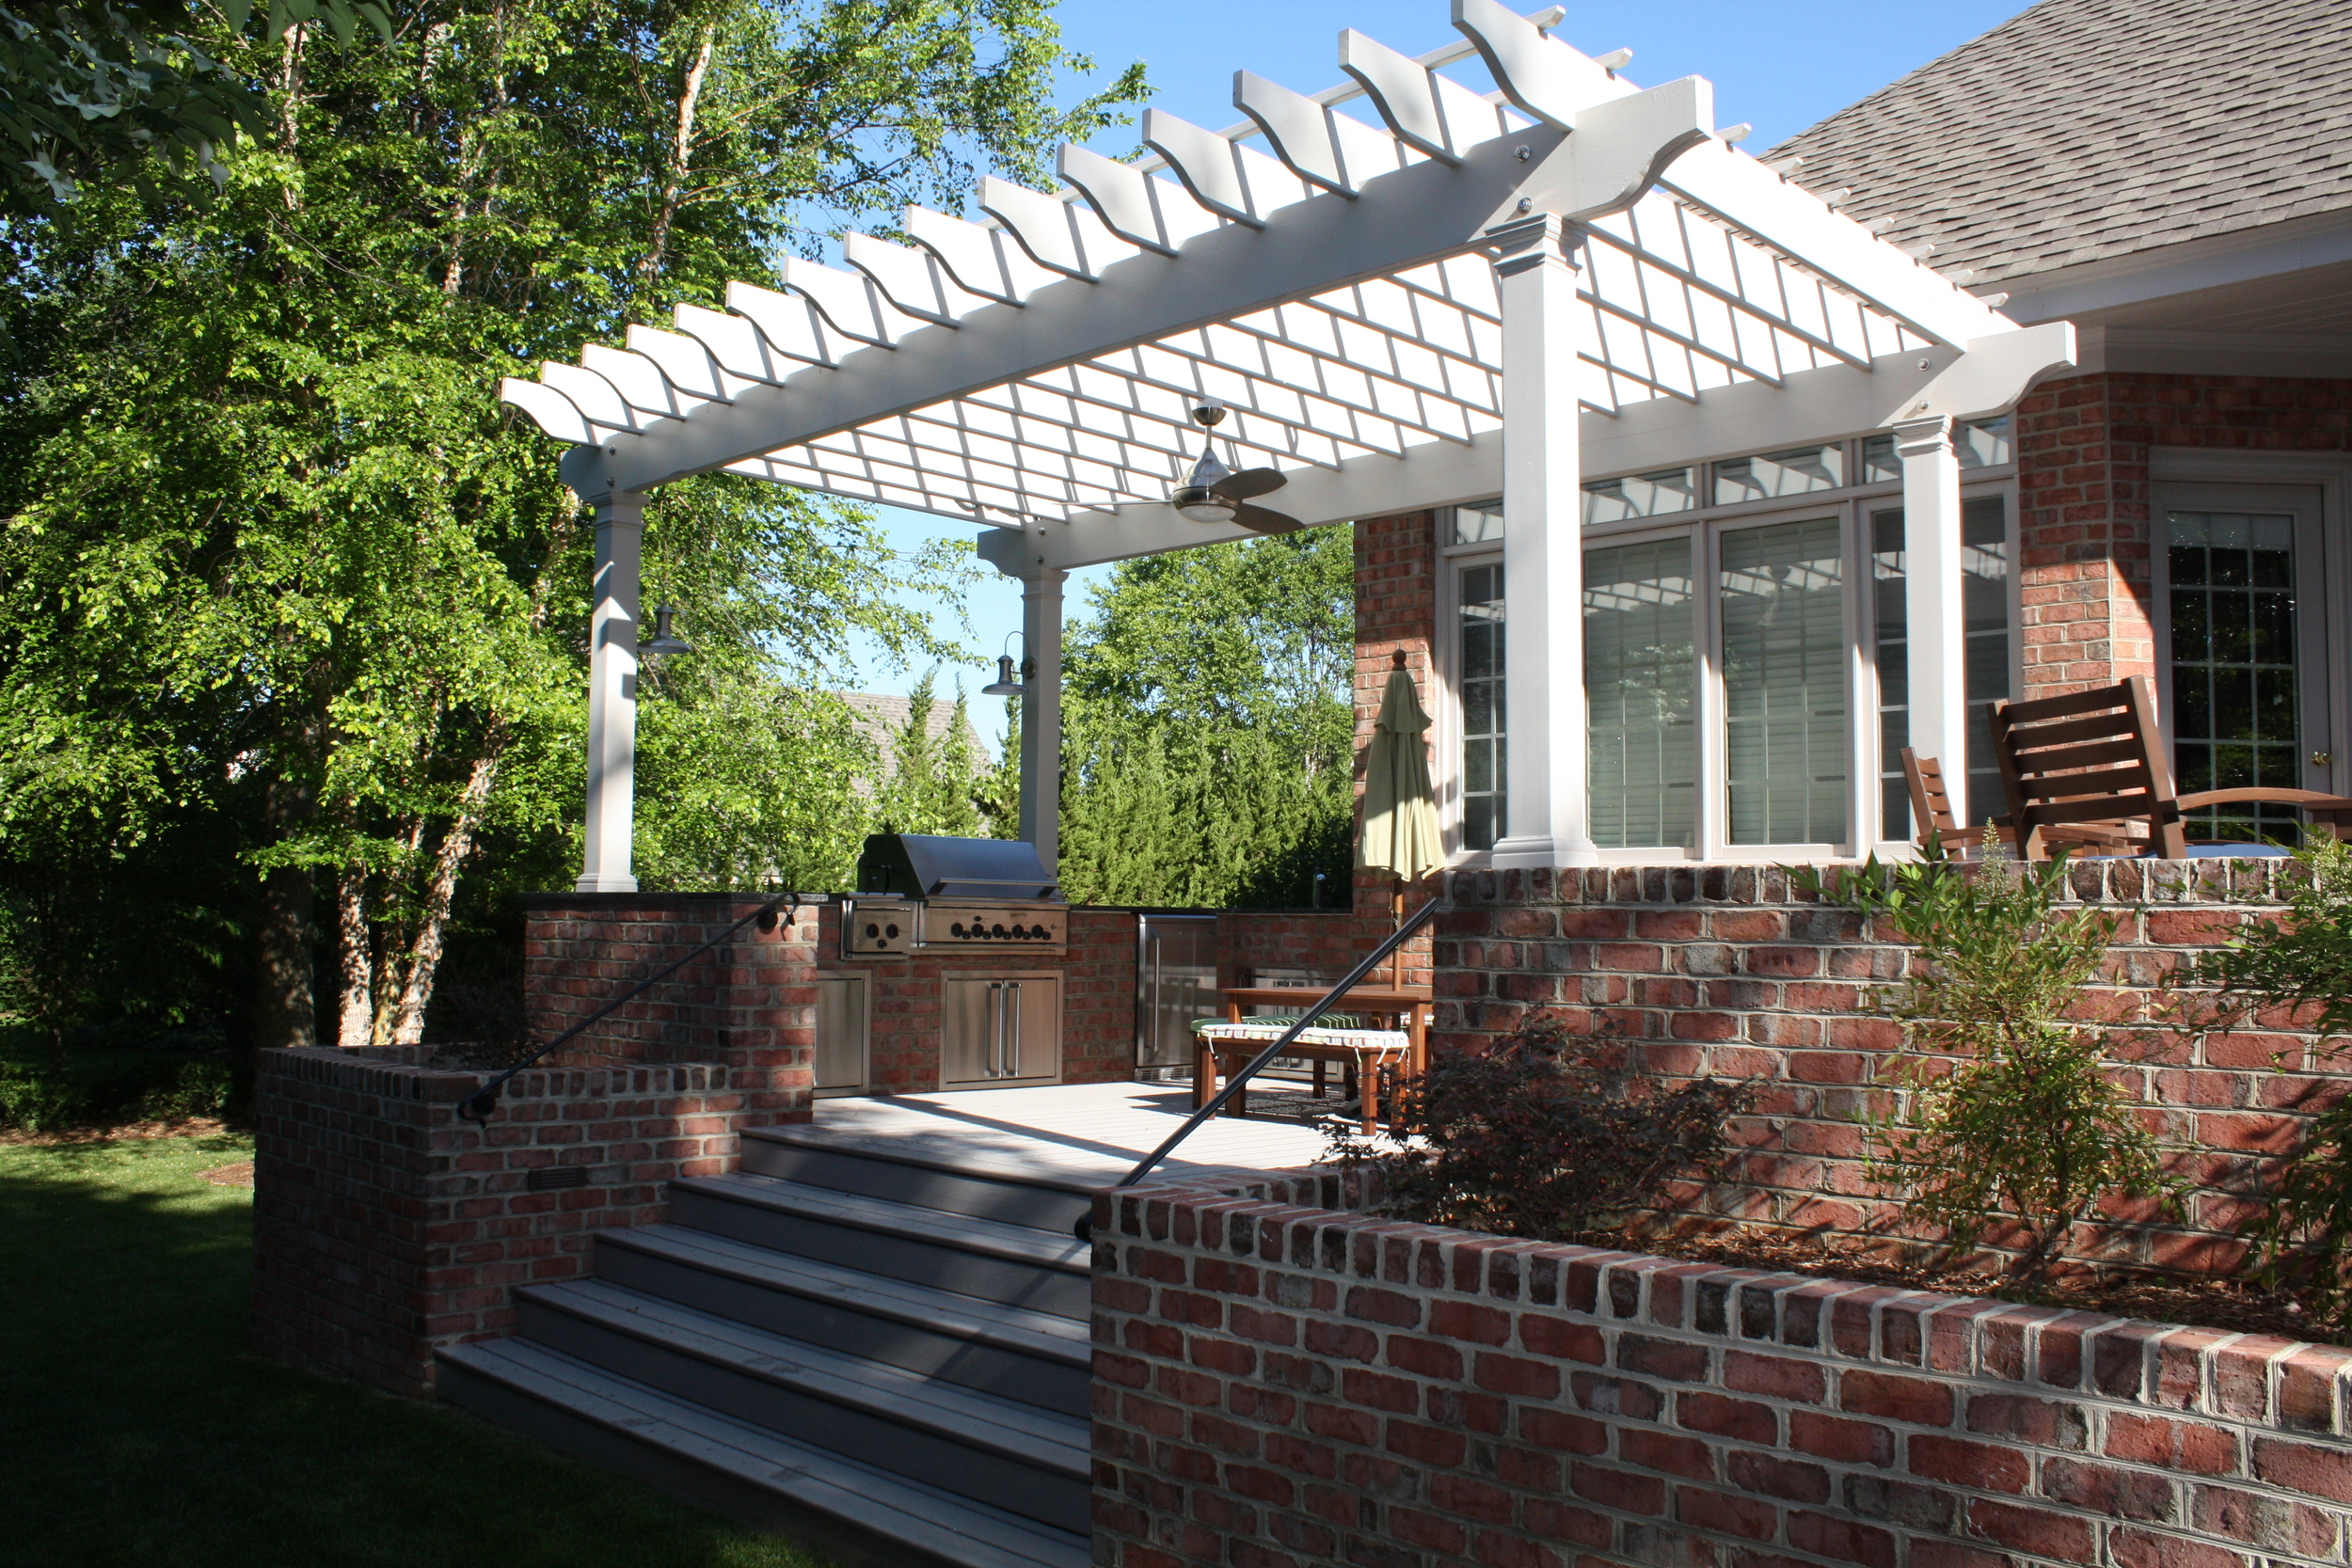 Kingsmill Outdoor Kitchen and Deck